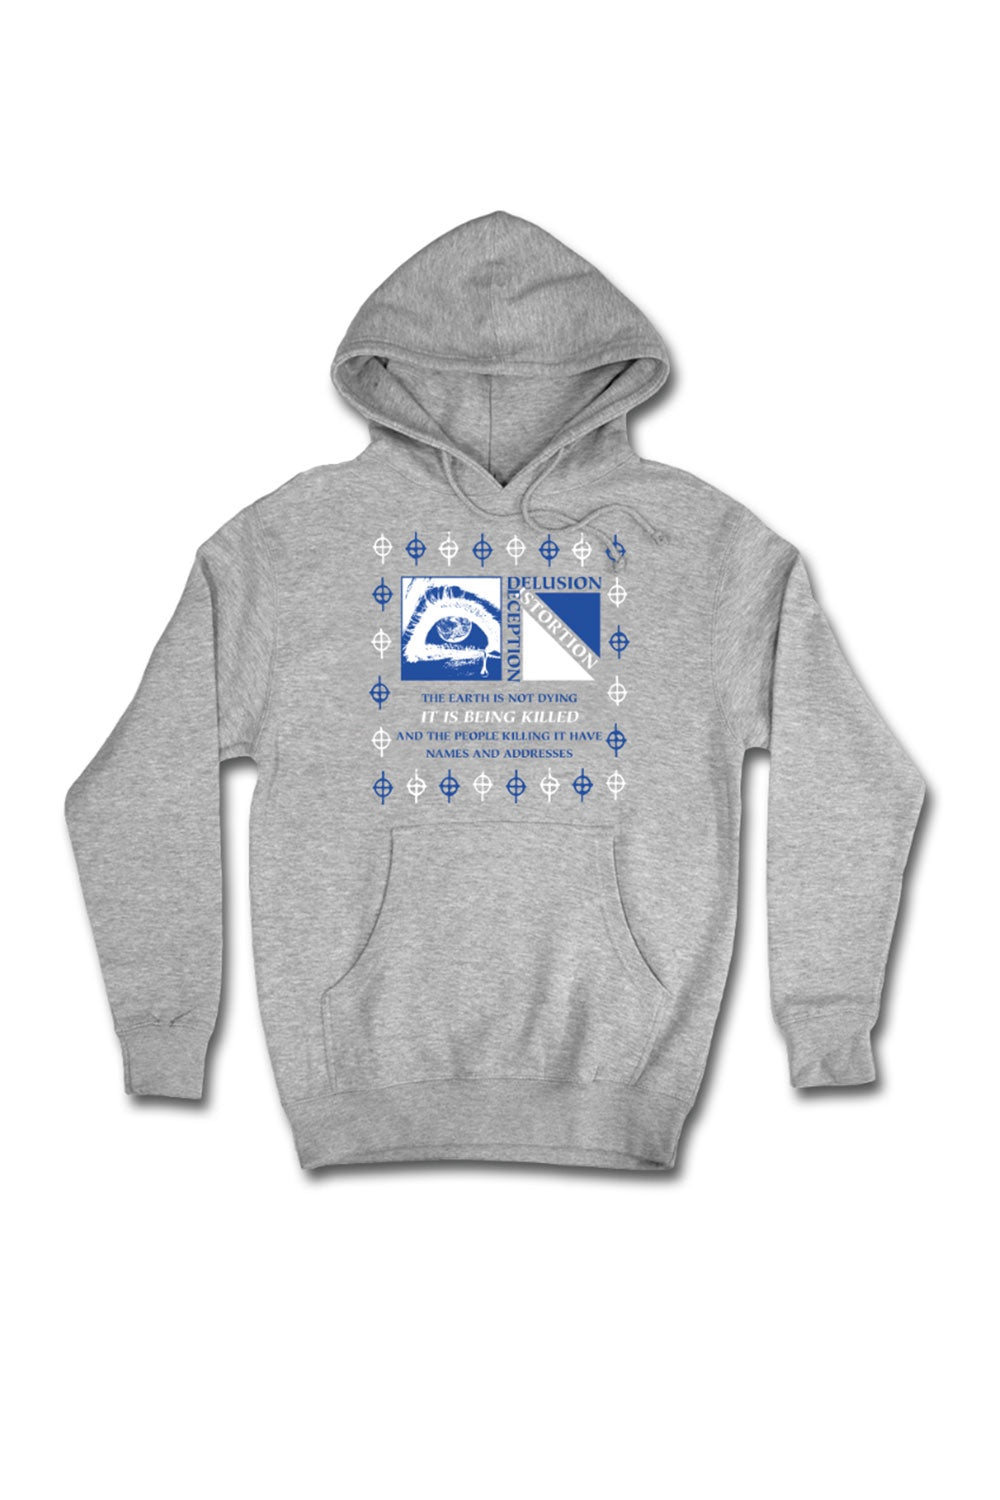 Come Sundown Earth Hoodie - Athletic Heather